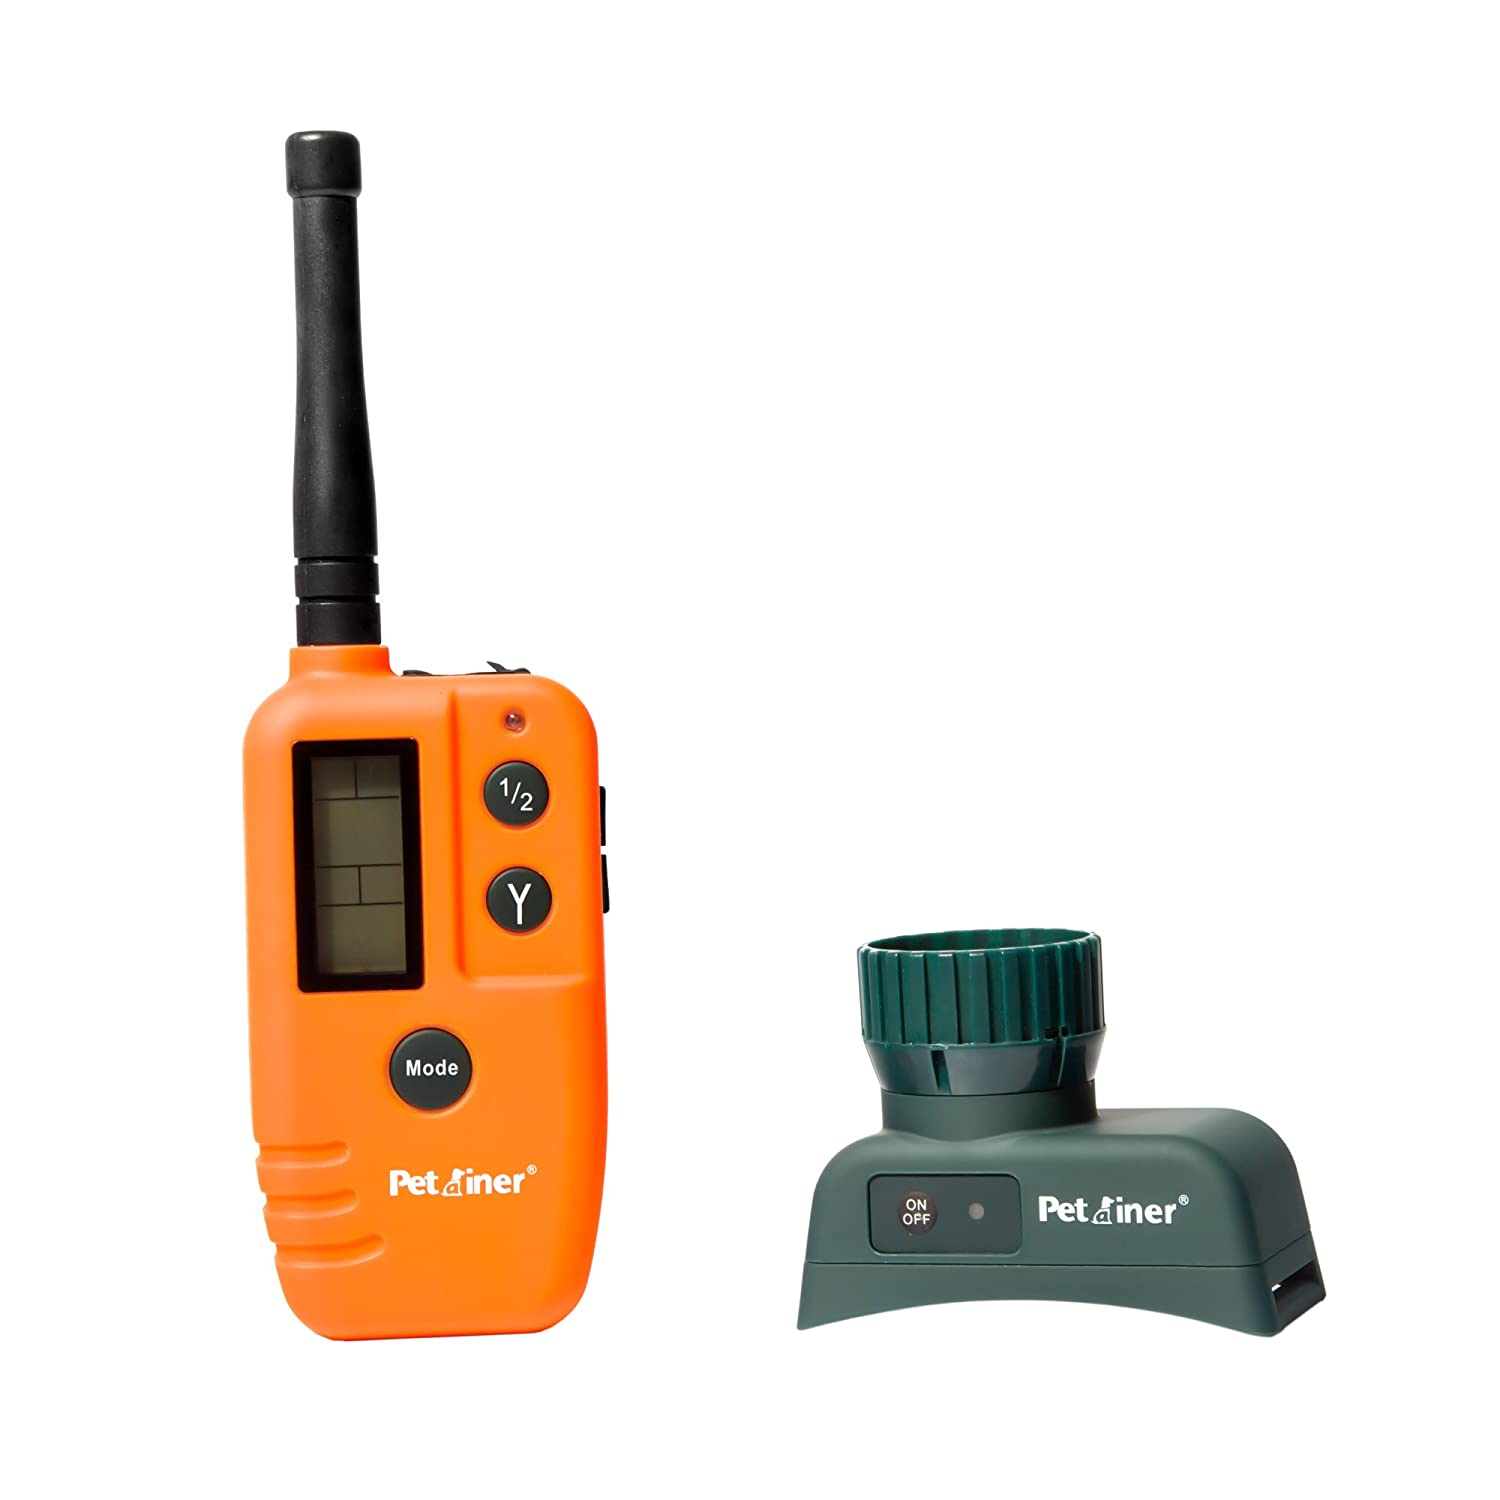 KP910B with beep location running KOFOHON KP910 with Remote Training and Beeper Collars   KP910B with Beeper Collar   KP910T with Remote Training Collar Remote Dog Training Hunter Electronic, Waterproof and Rechargeable Collars